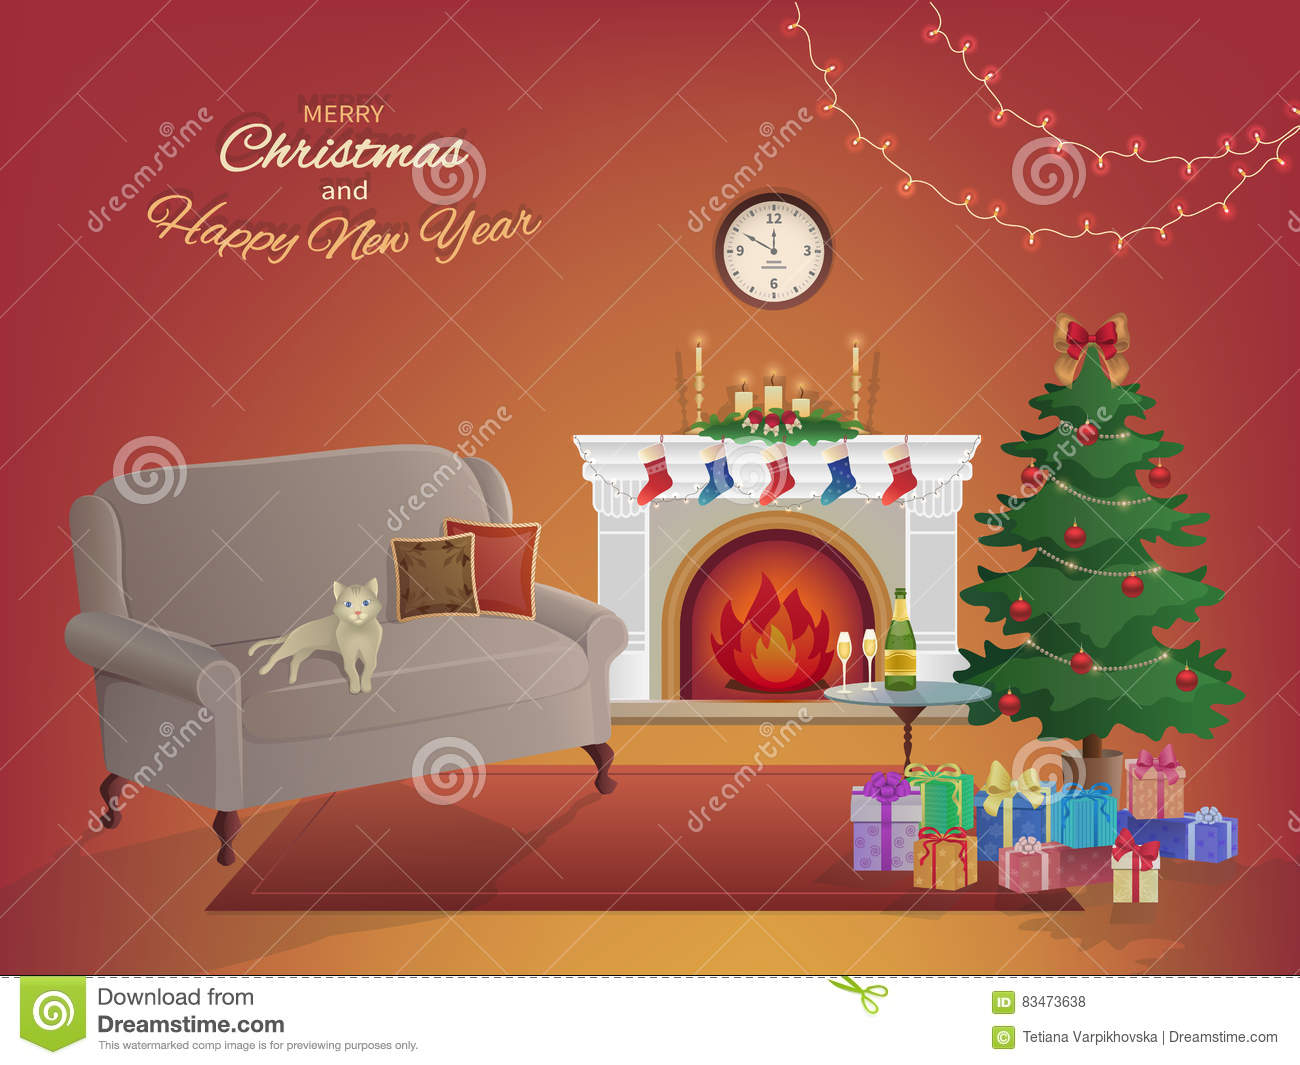 Merry Christmas room interior on a red background with a fireplace, Christmas tree, couch, gift boxes, wall clock. Candles socks